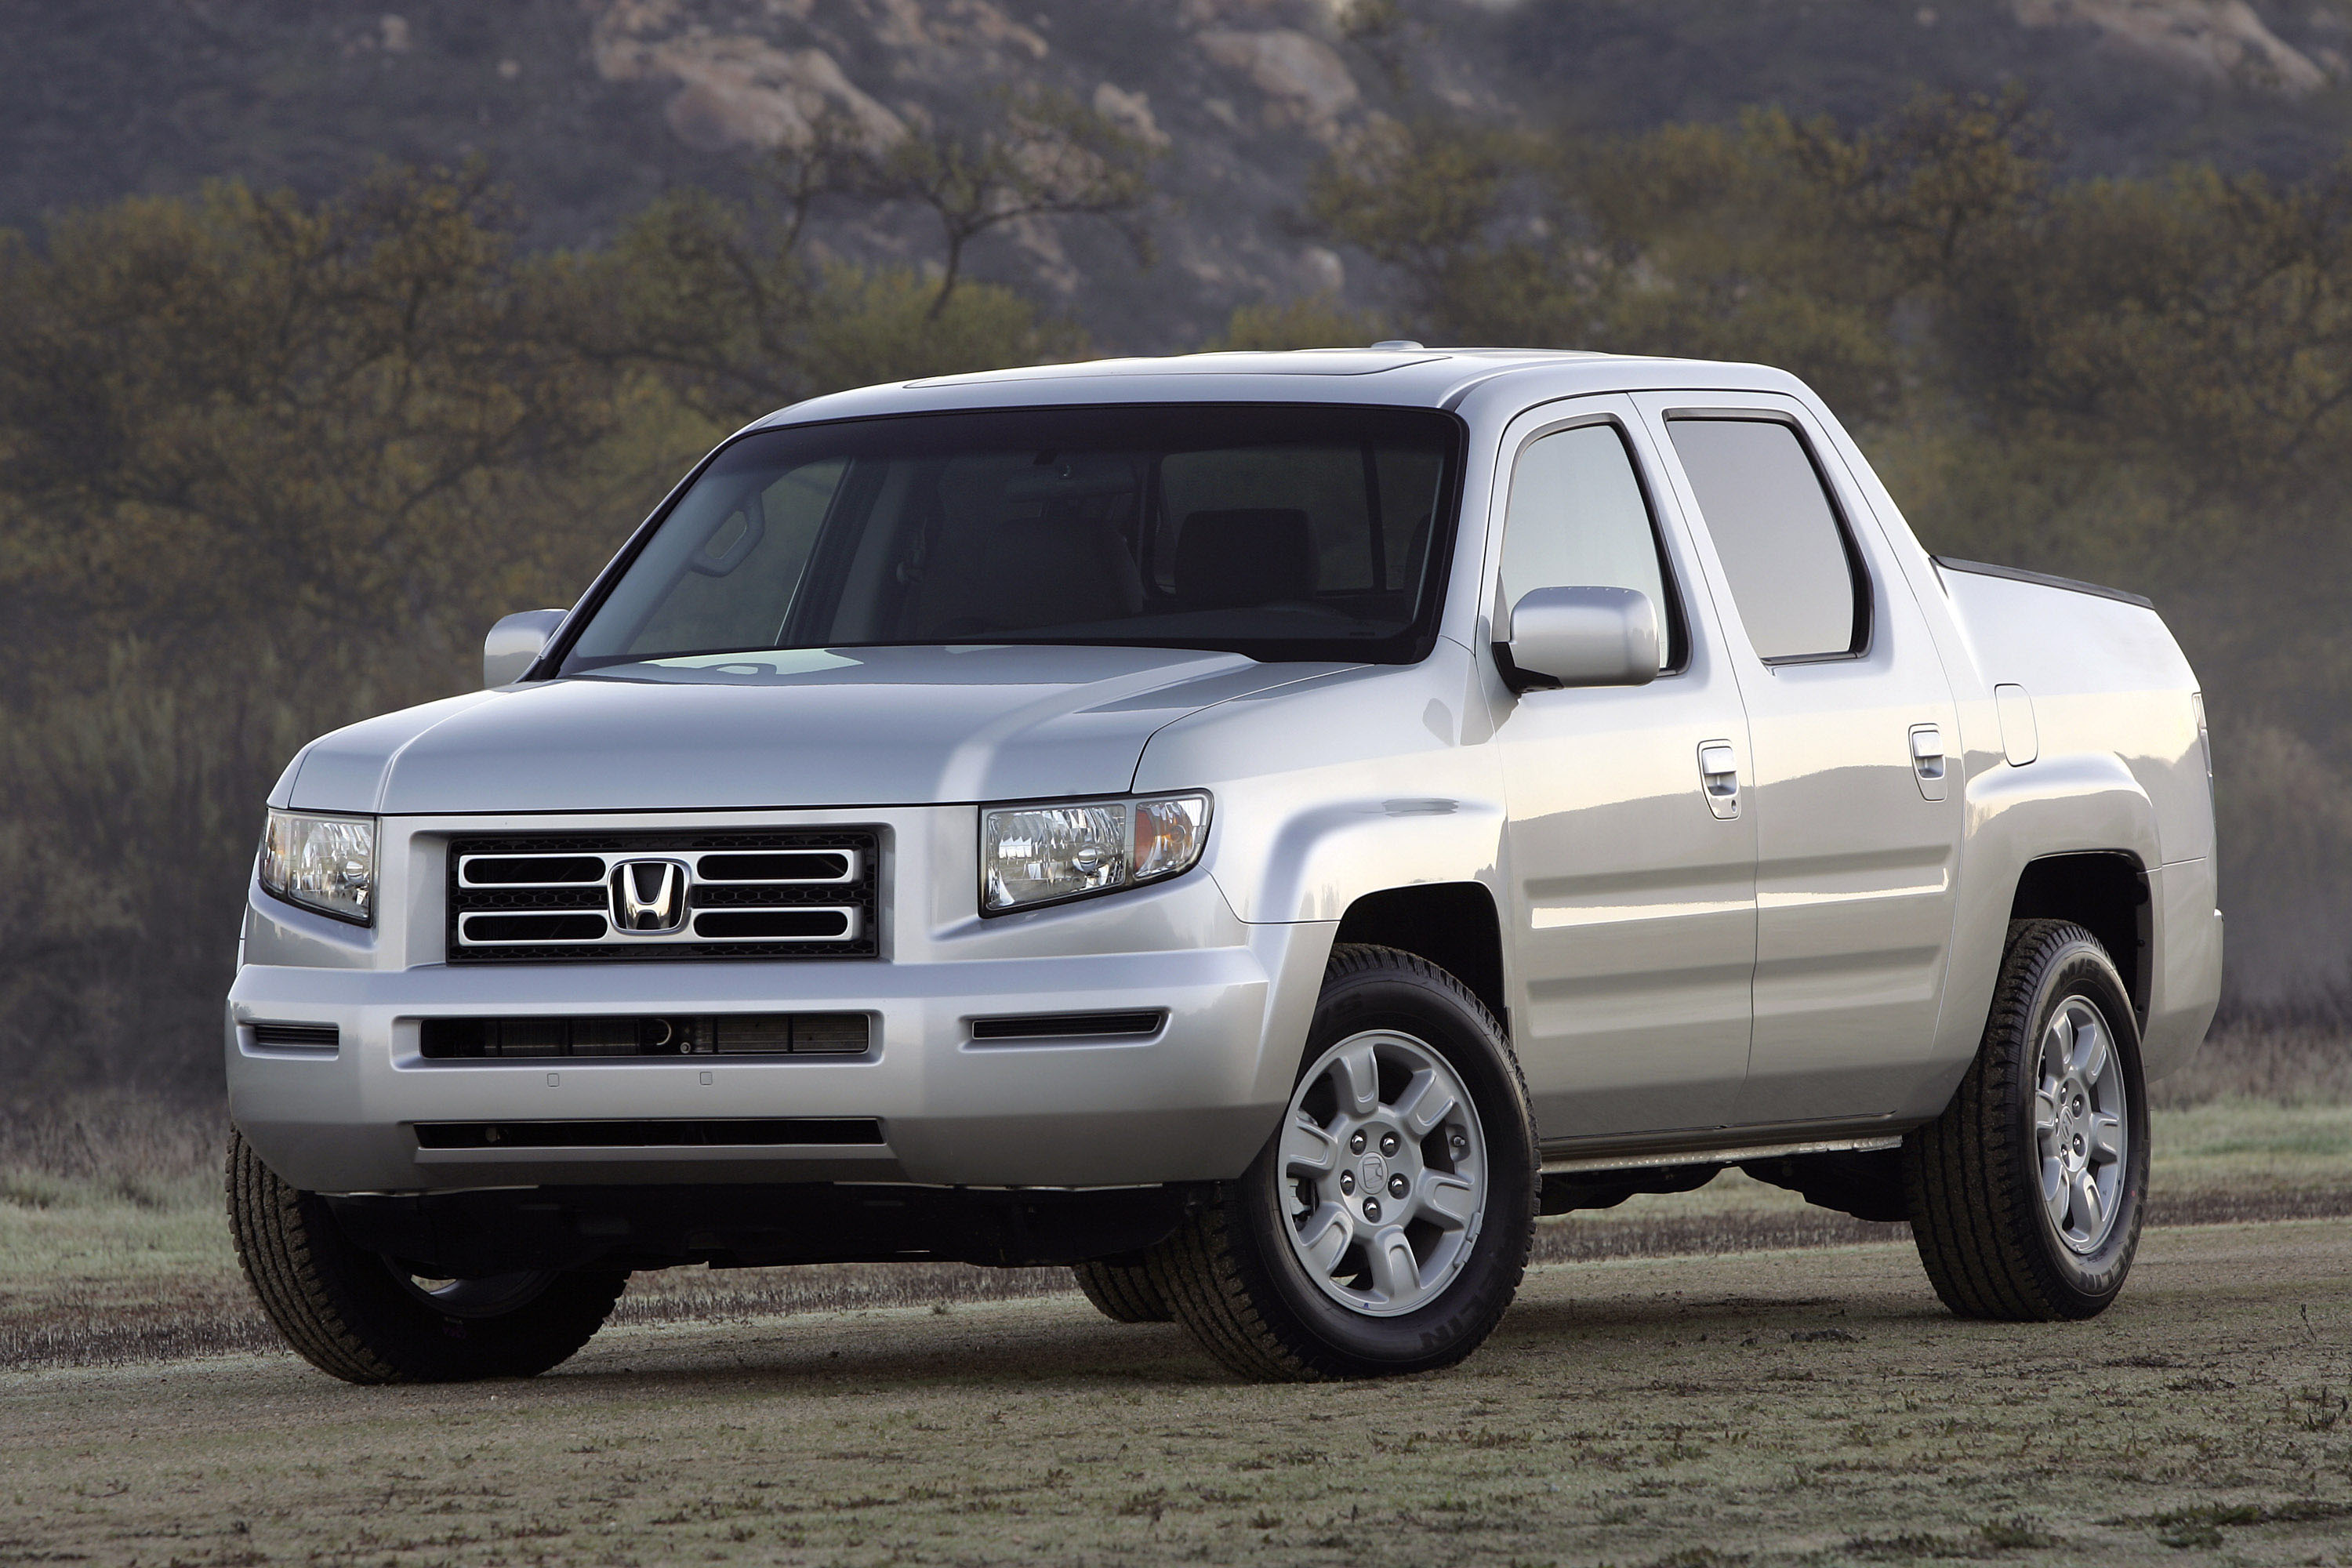 2006 honda ridgeline rtl picture 106589. Black Bedroom Furniture Sets. Home Design Ideas